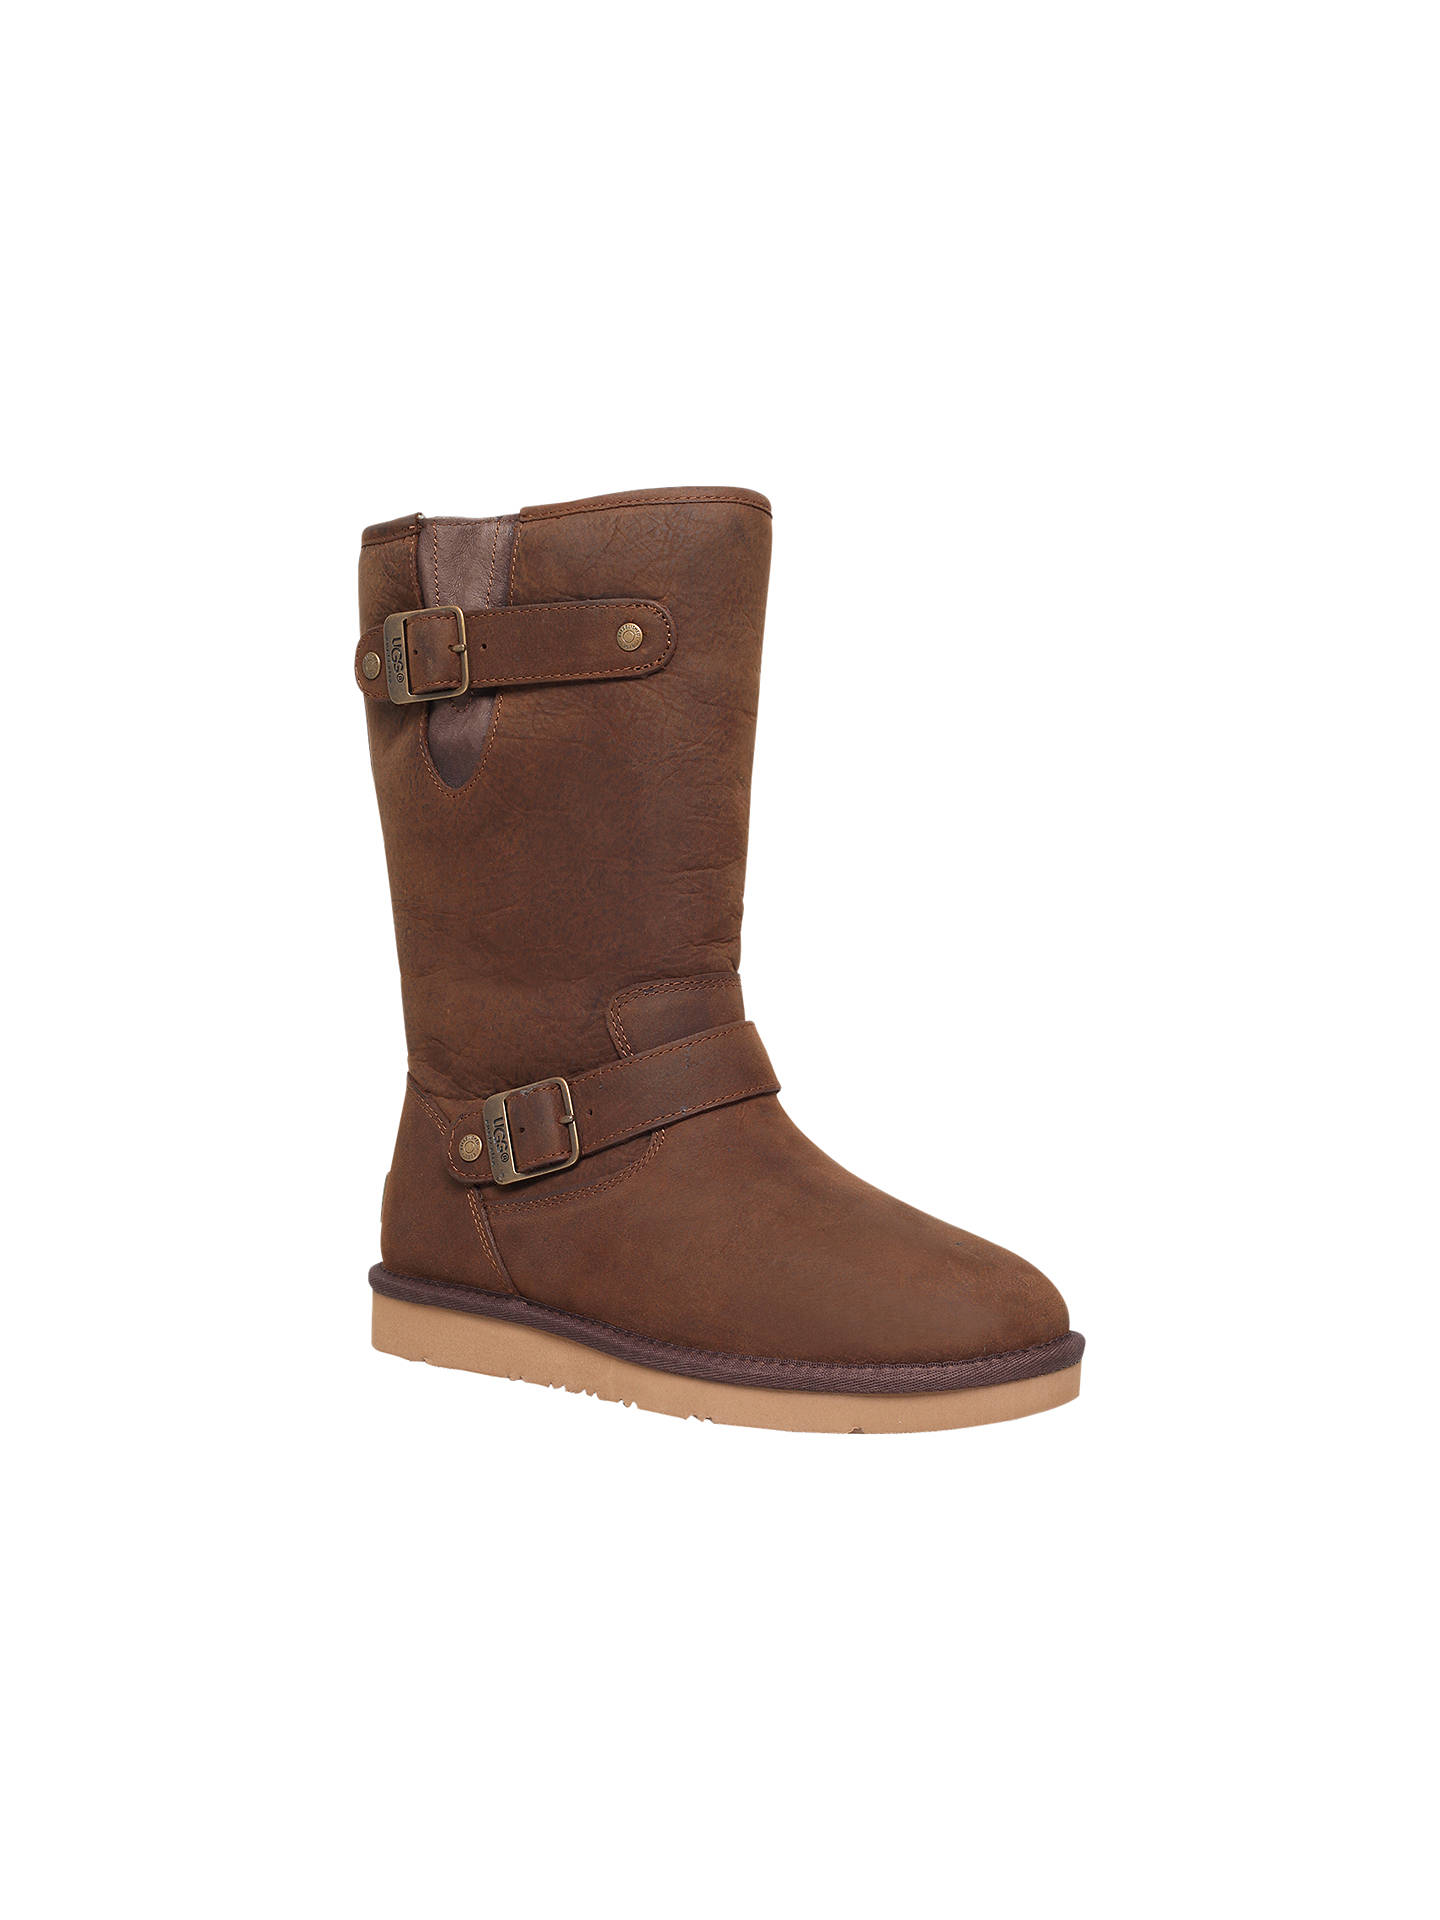 7c8acd3aa0c UGG Sutter Leather Calf Boots at John Lewis & Partners